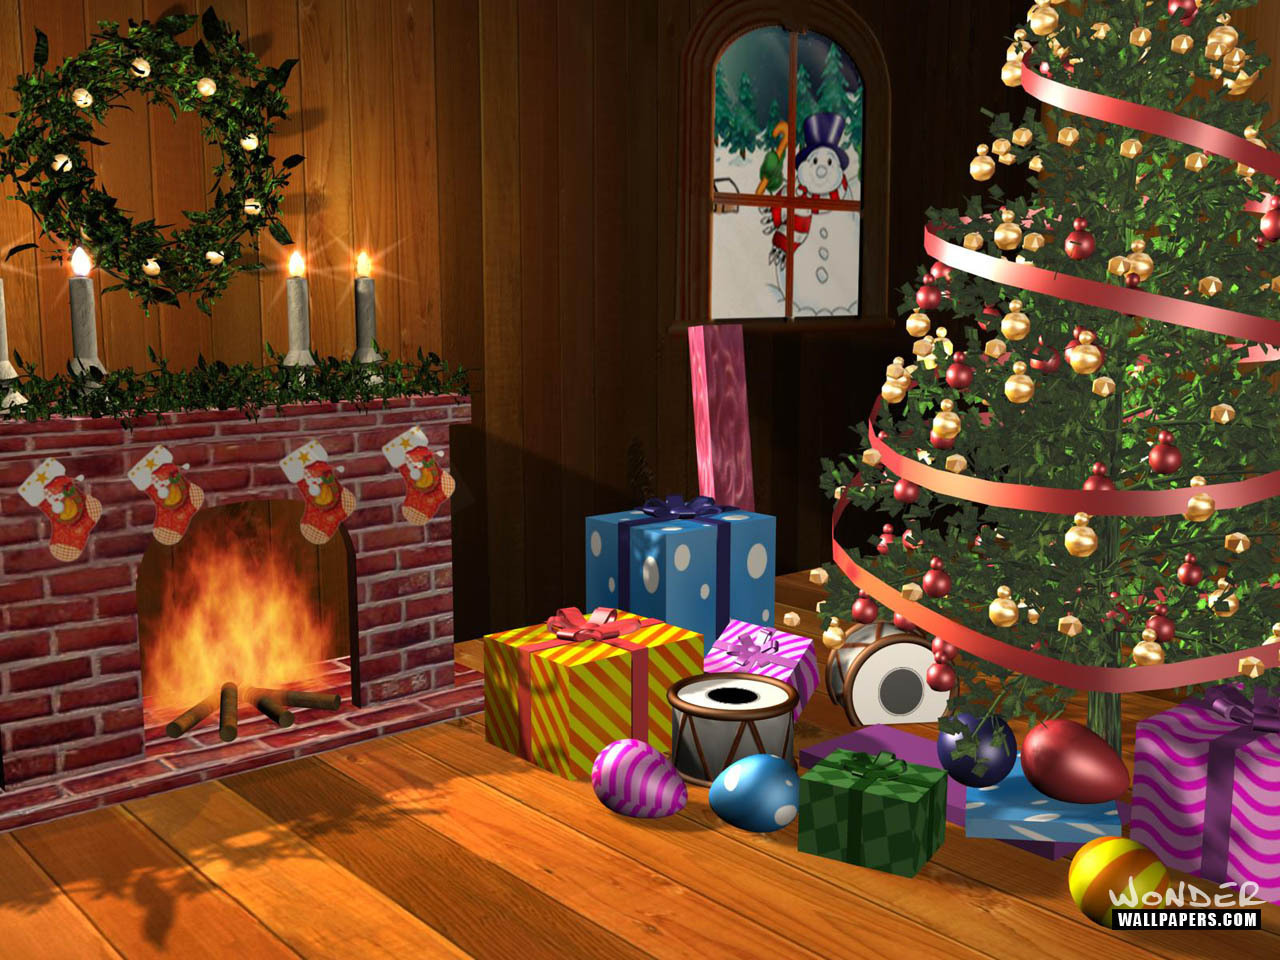 Favorite Free Christmas Desktop Scenes 1280 x 960 · 340 kB · jpeg